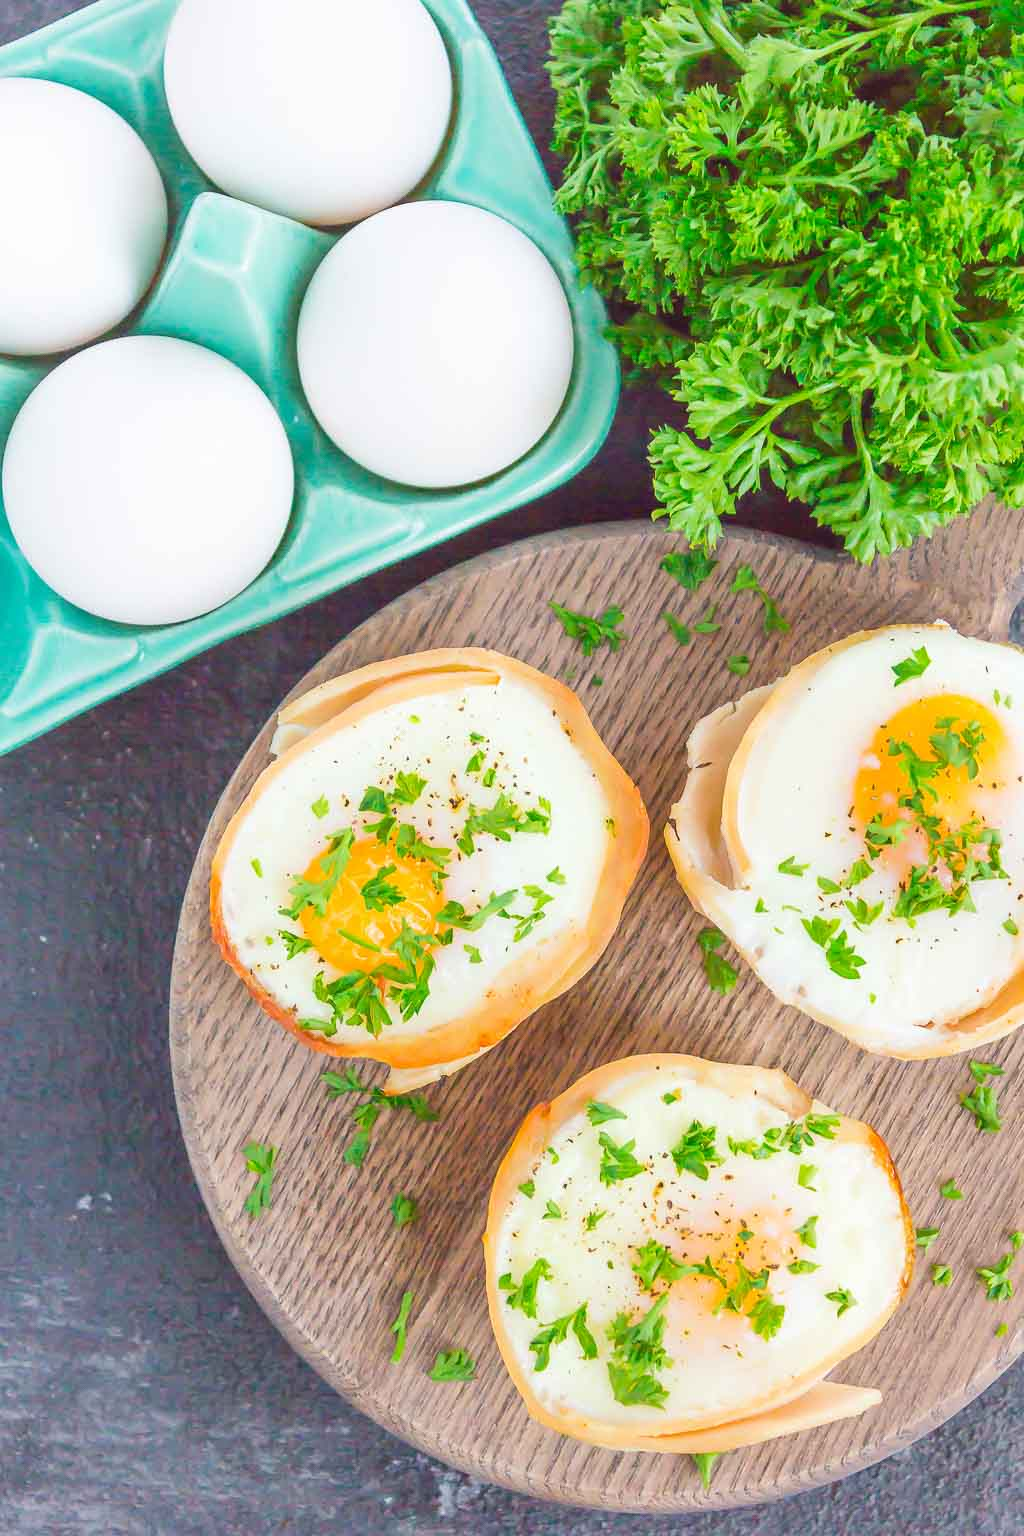 These Turkey Egg Cups are loaded with flavor and perfect for a quick and hearty breakfast. Made with just a few ingredients and ready in less than 30 minutes, this easy dish is a great way to start the day! #eggs #eggcups #eggmuffins #turkeycups #turkeyeggcups